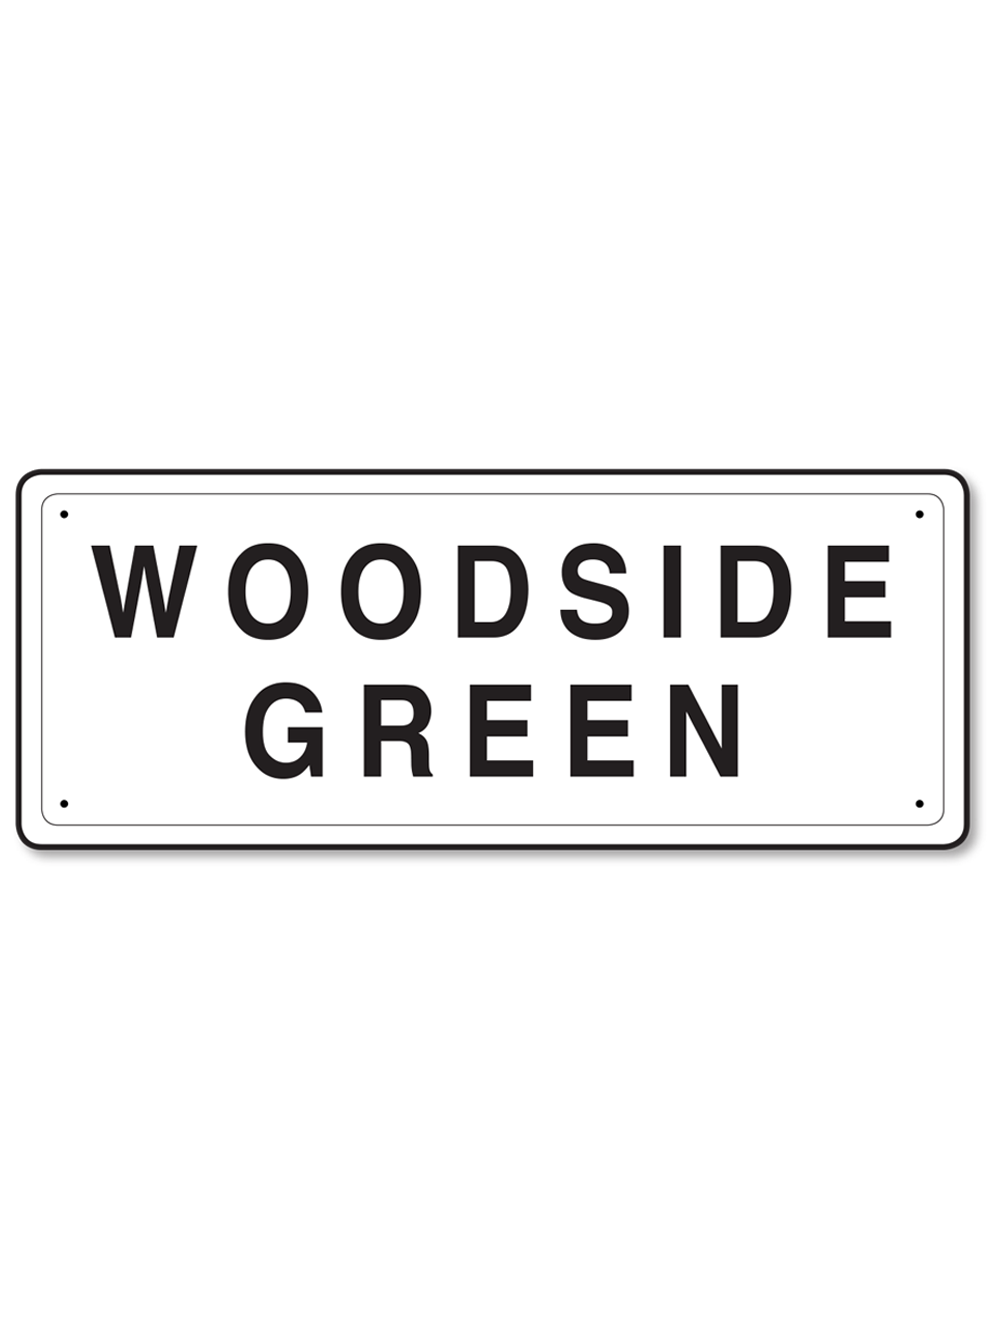 woodside-green_1000x1333.png